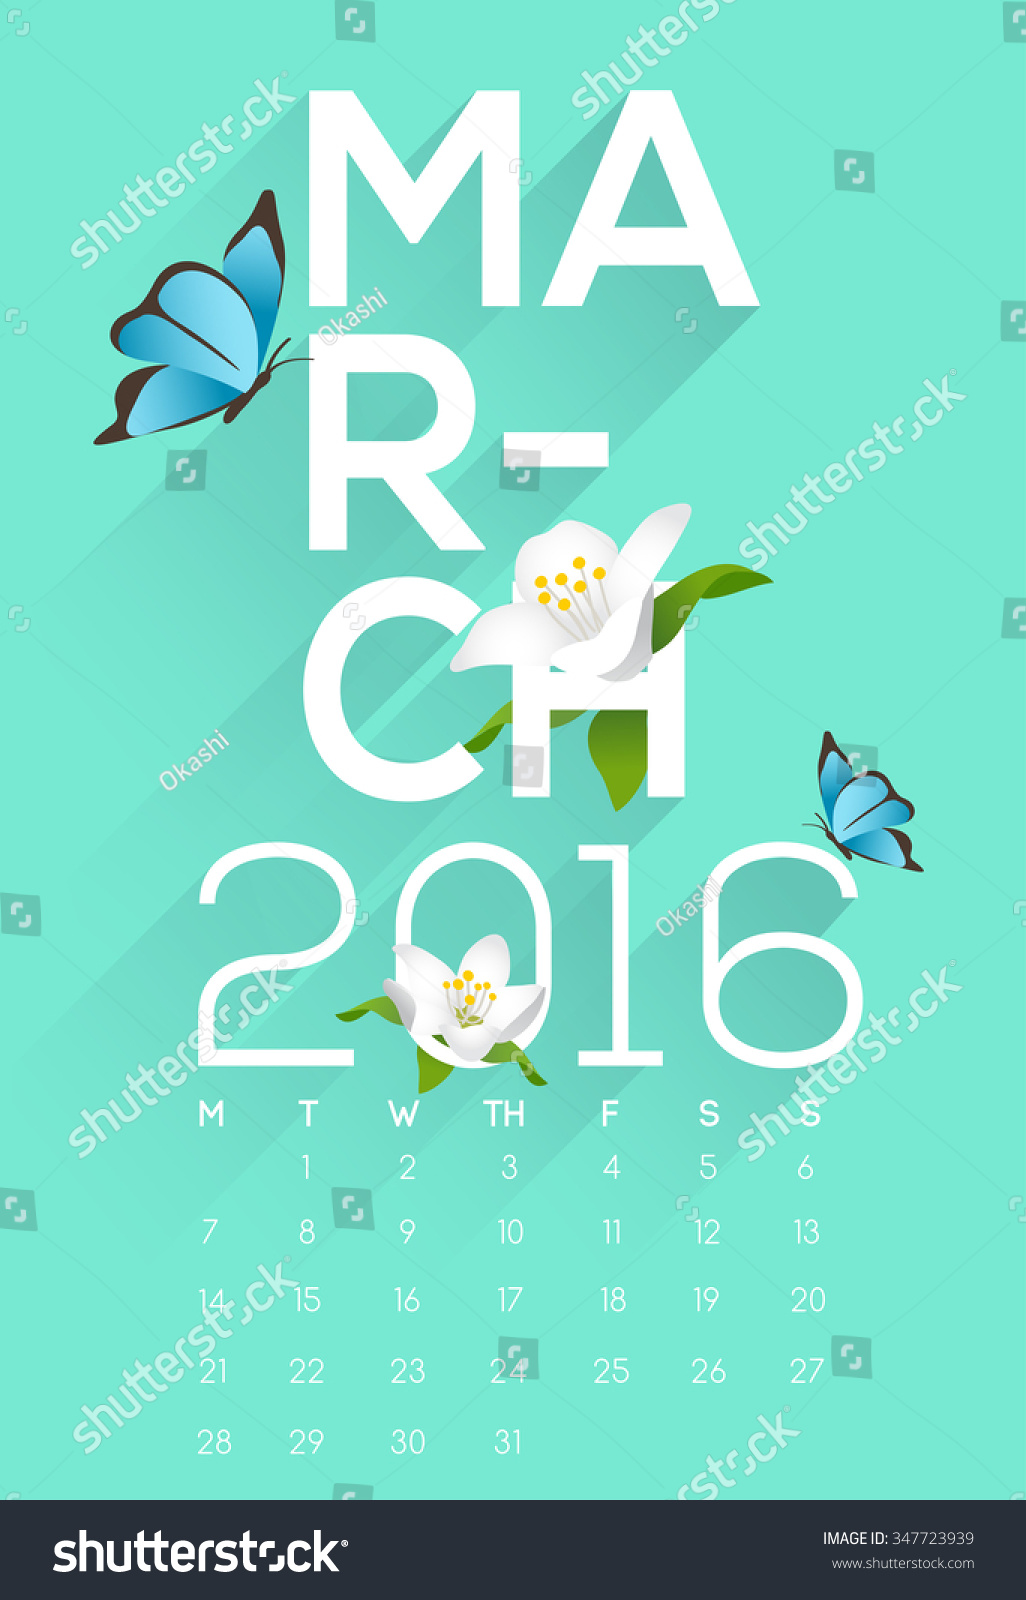 Calendar Typography Vector : Calendar march typography and decorative items